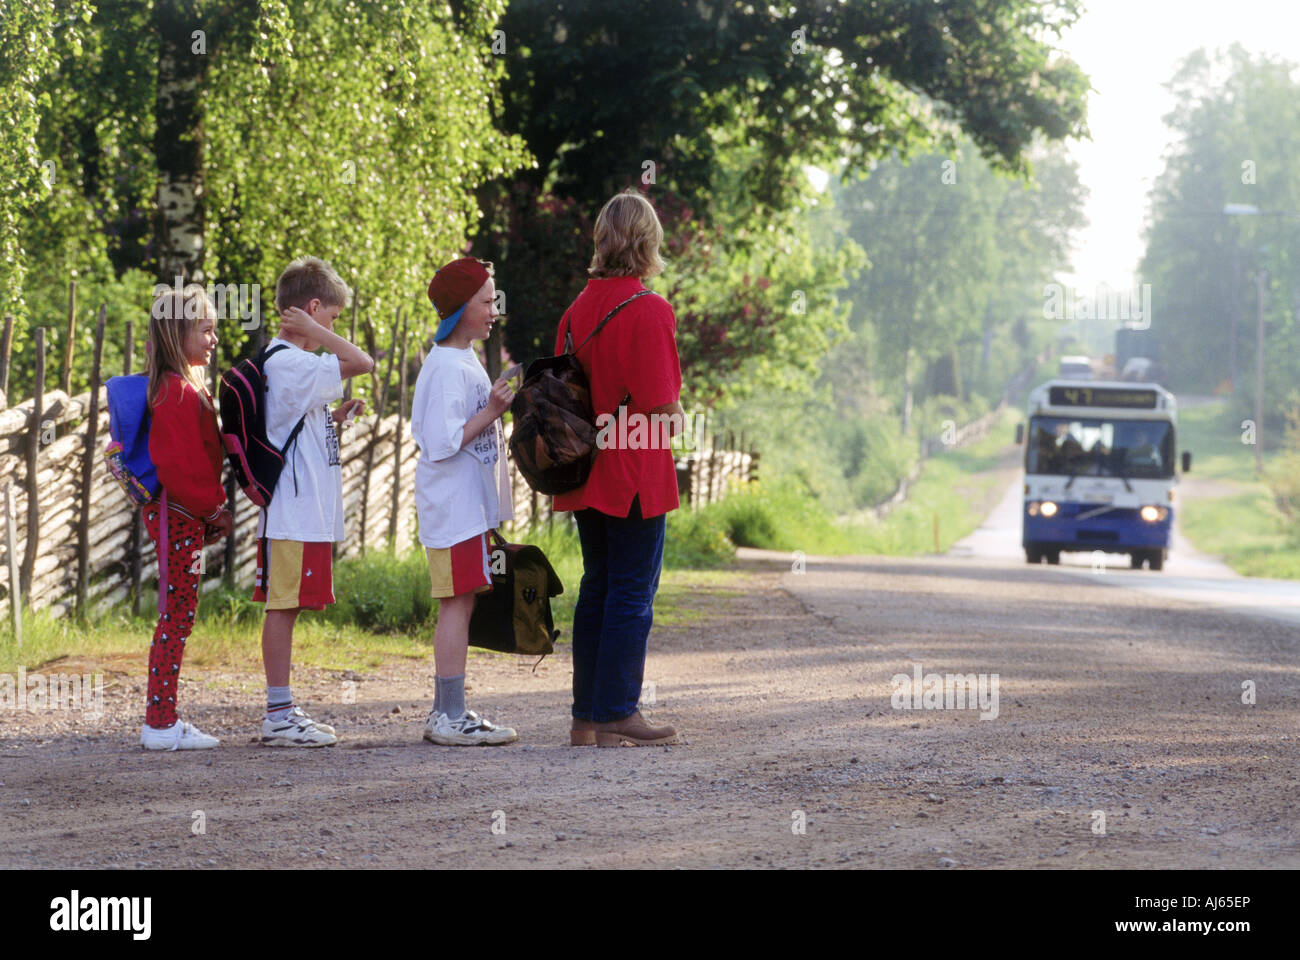 Children And Parent Waiting For School Bus On Country Road